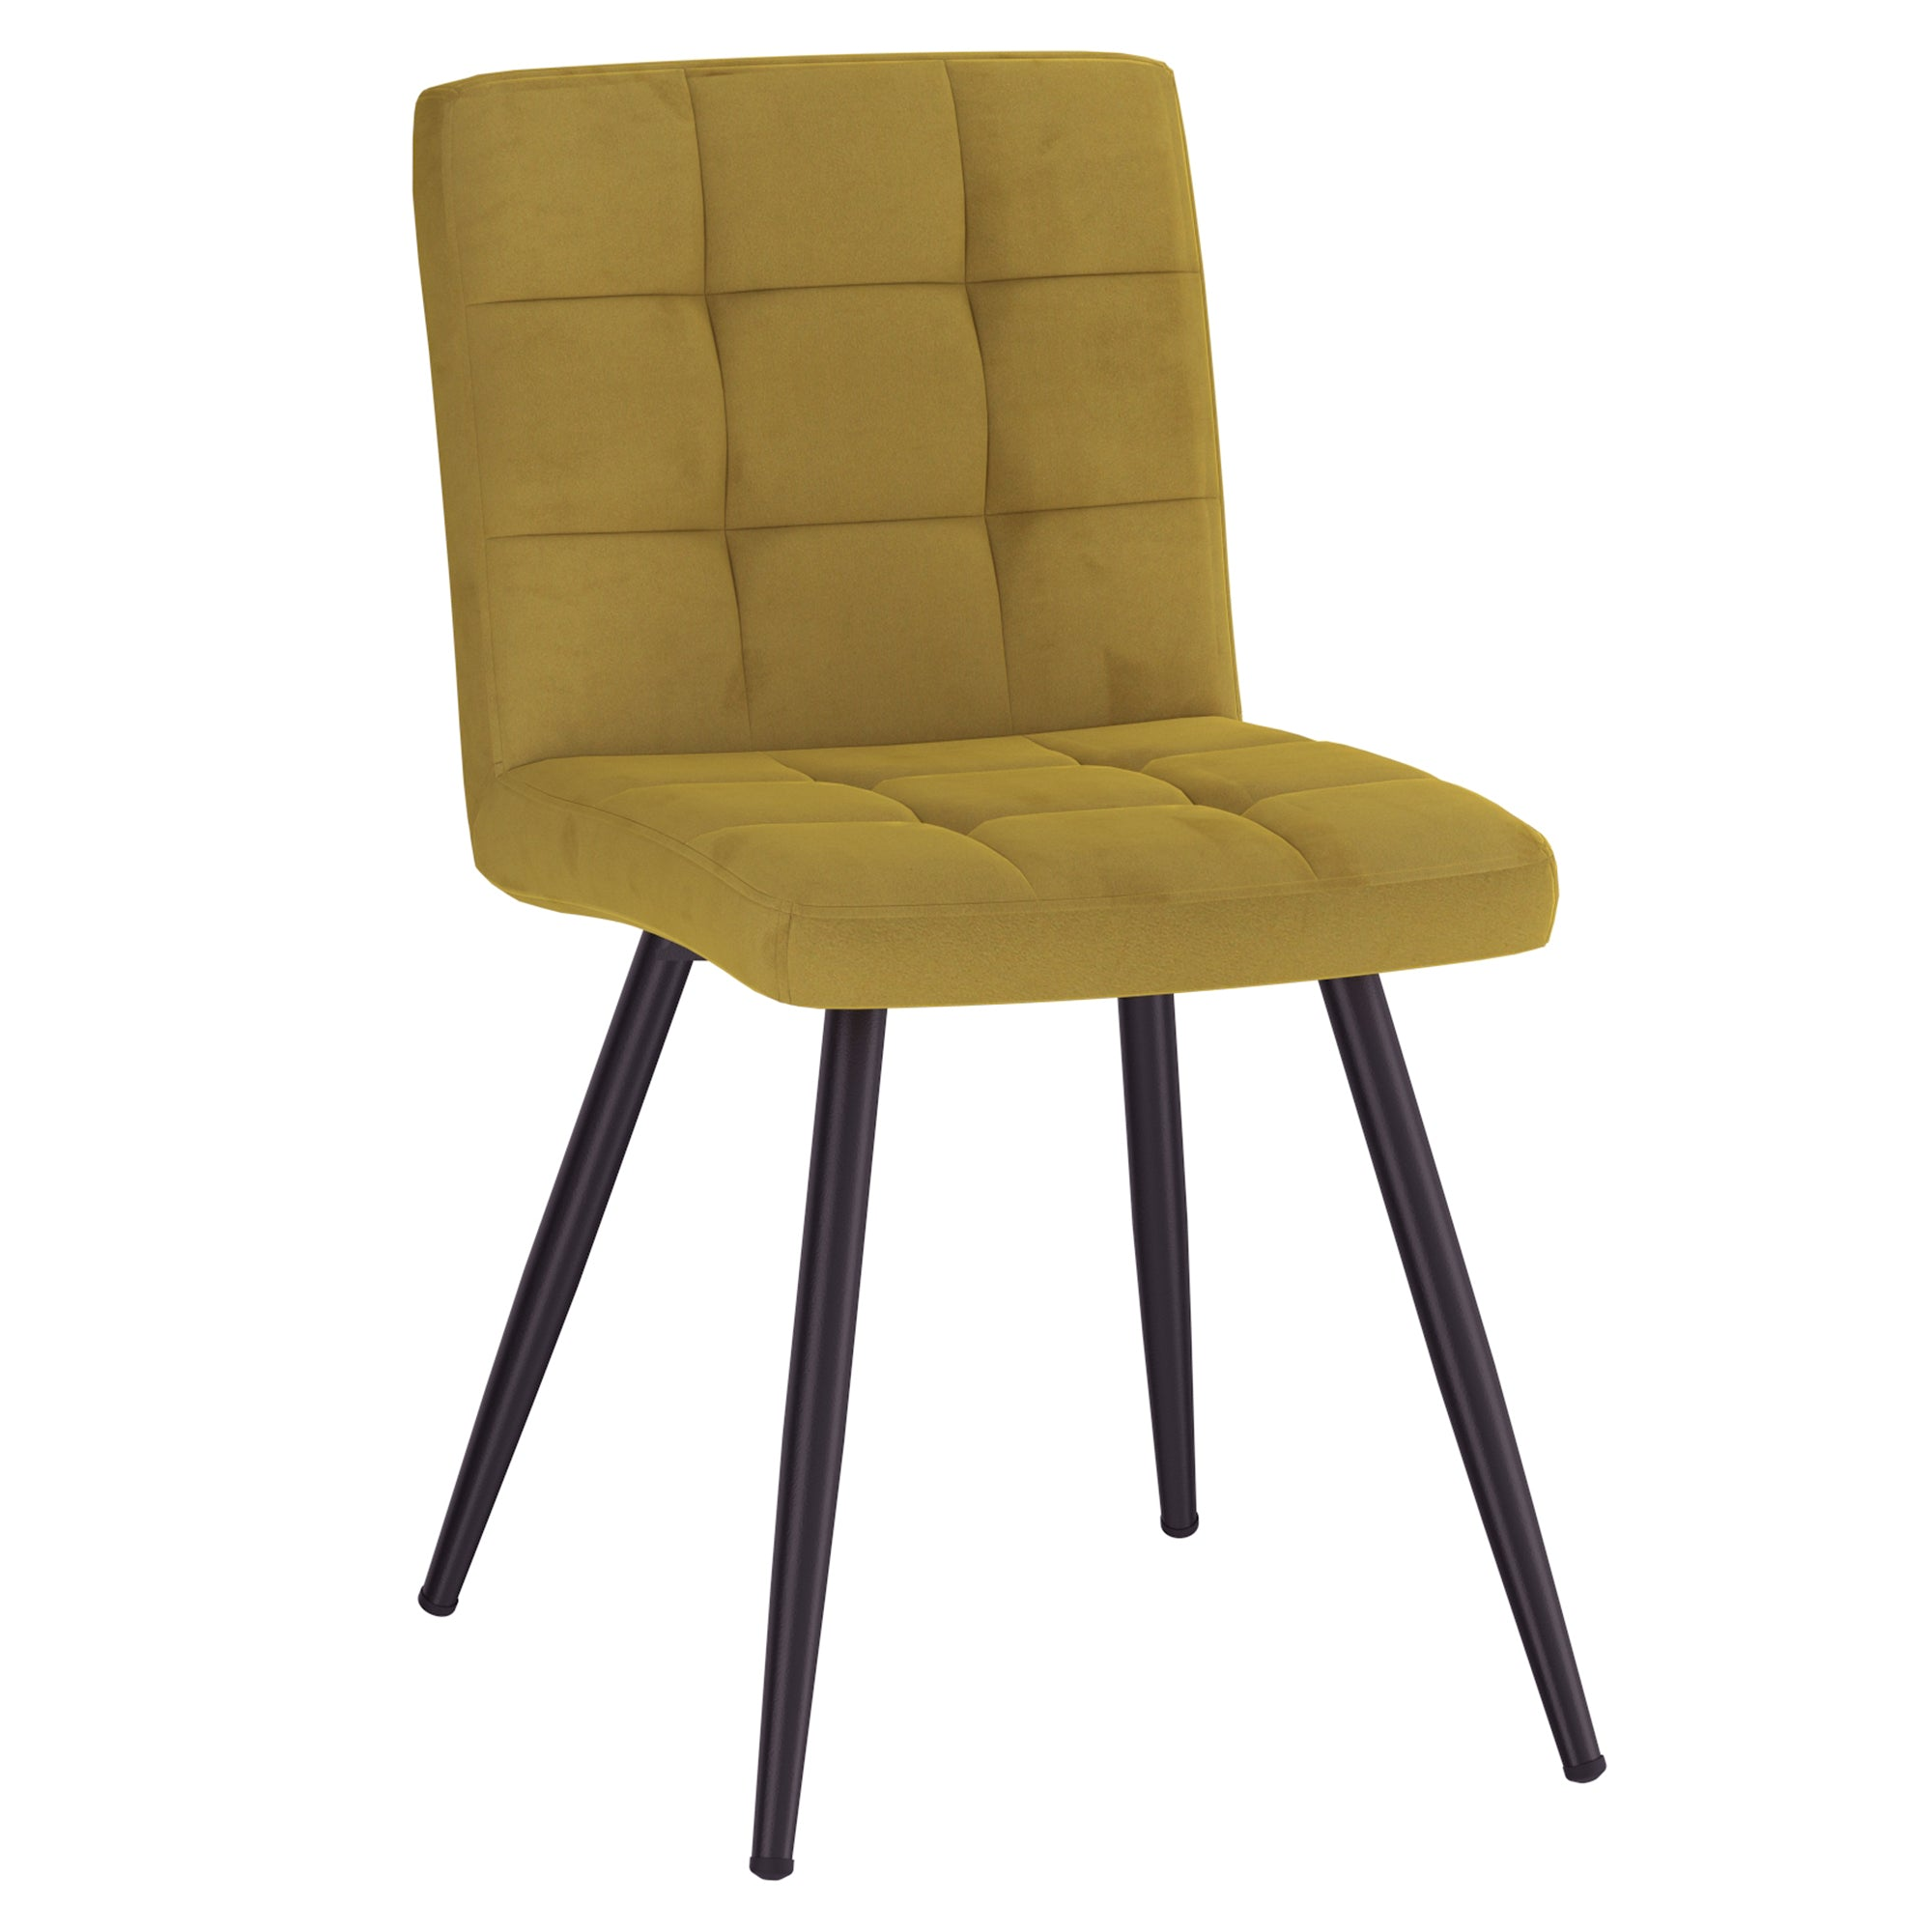 Suzette Side Chair - Mustard